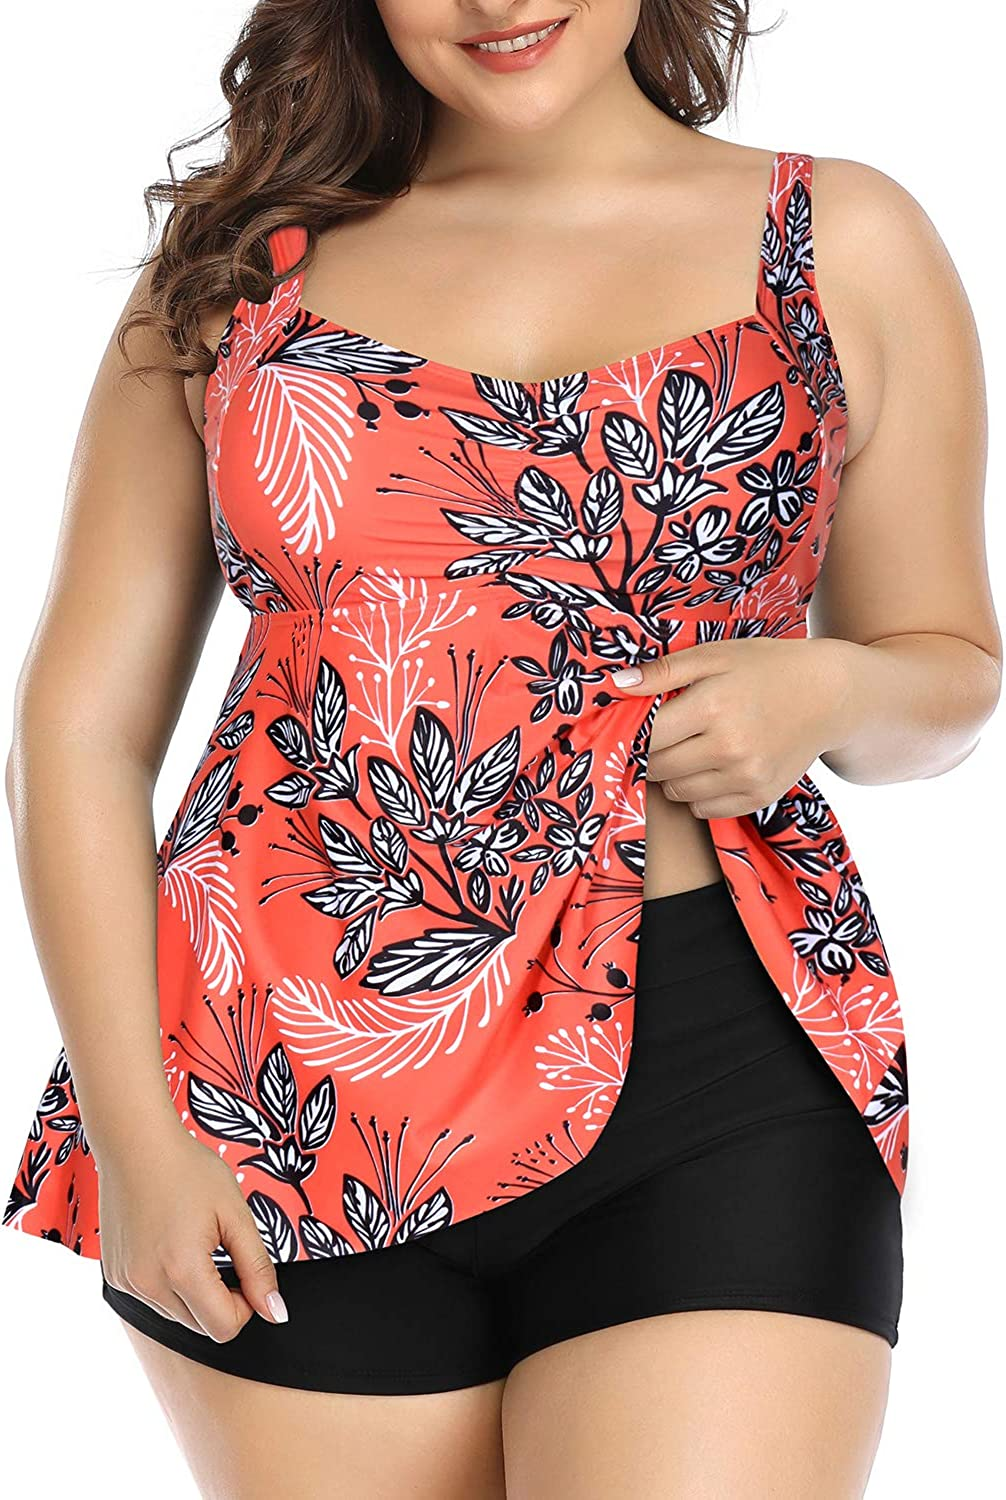 Aqua Eve Women Plus Size Tankini Swimsuits Flowy 2 Pieces Bathing Suits with Shorts